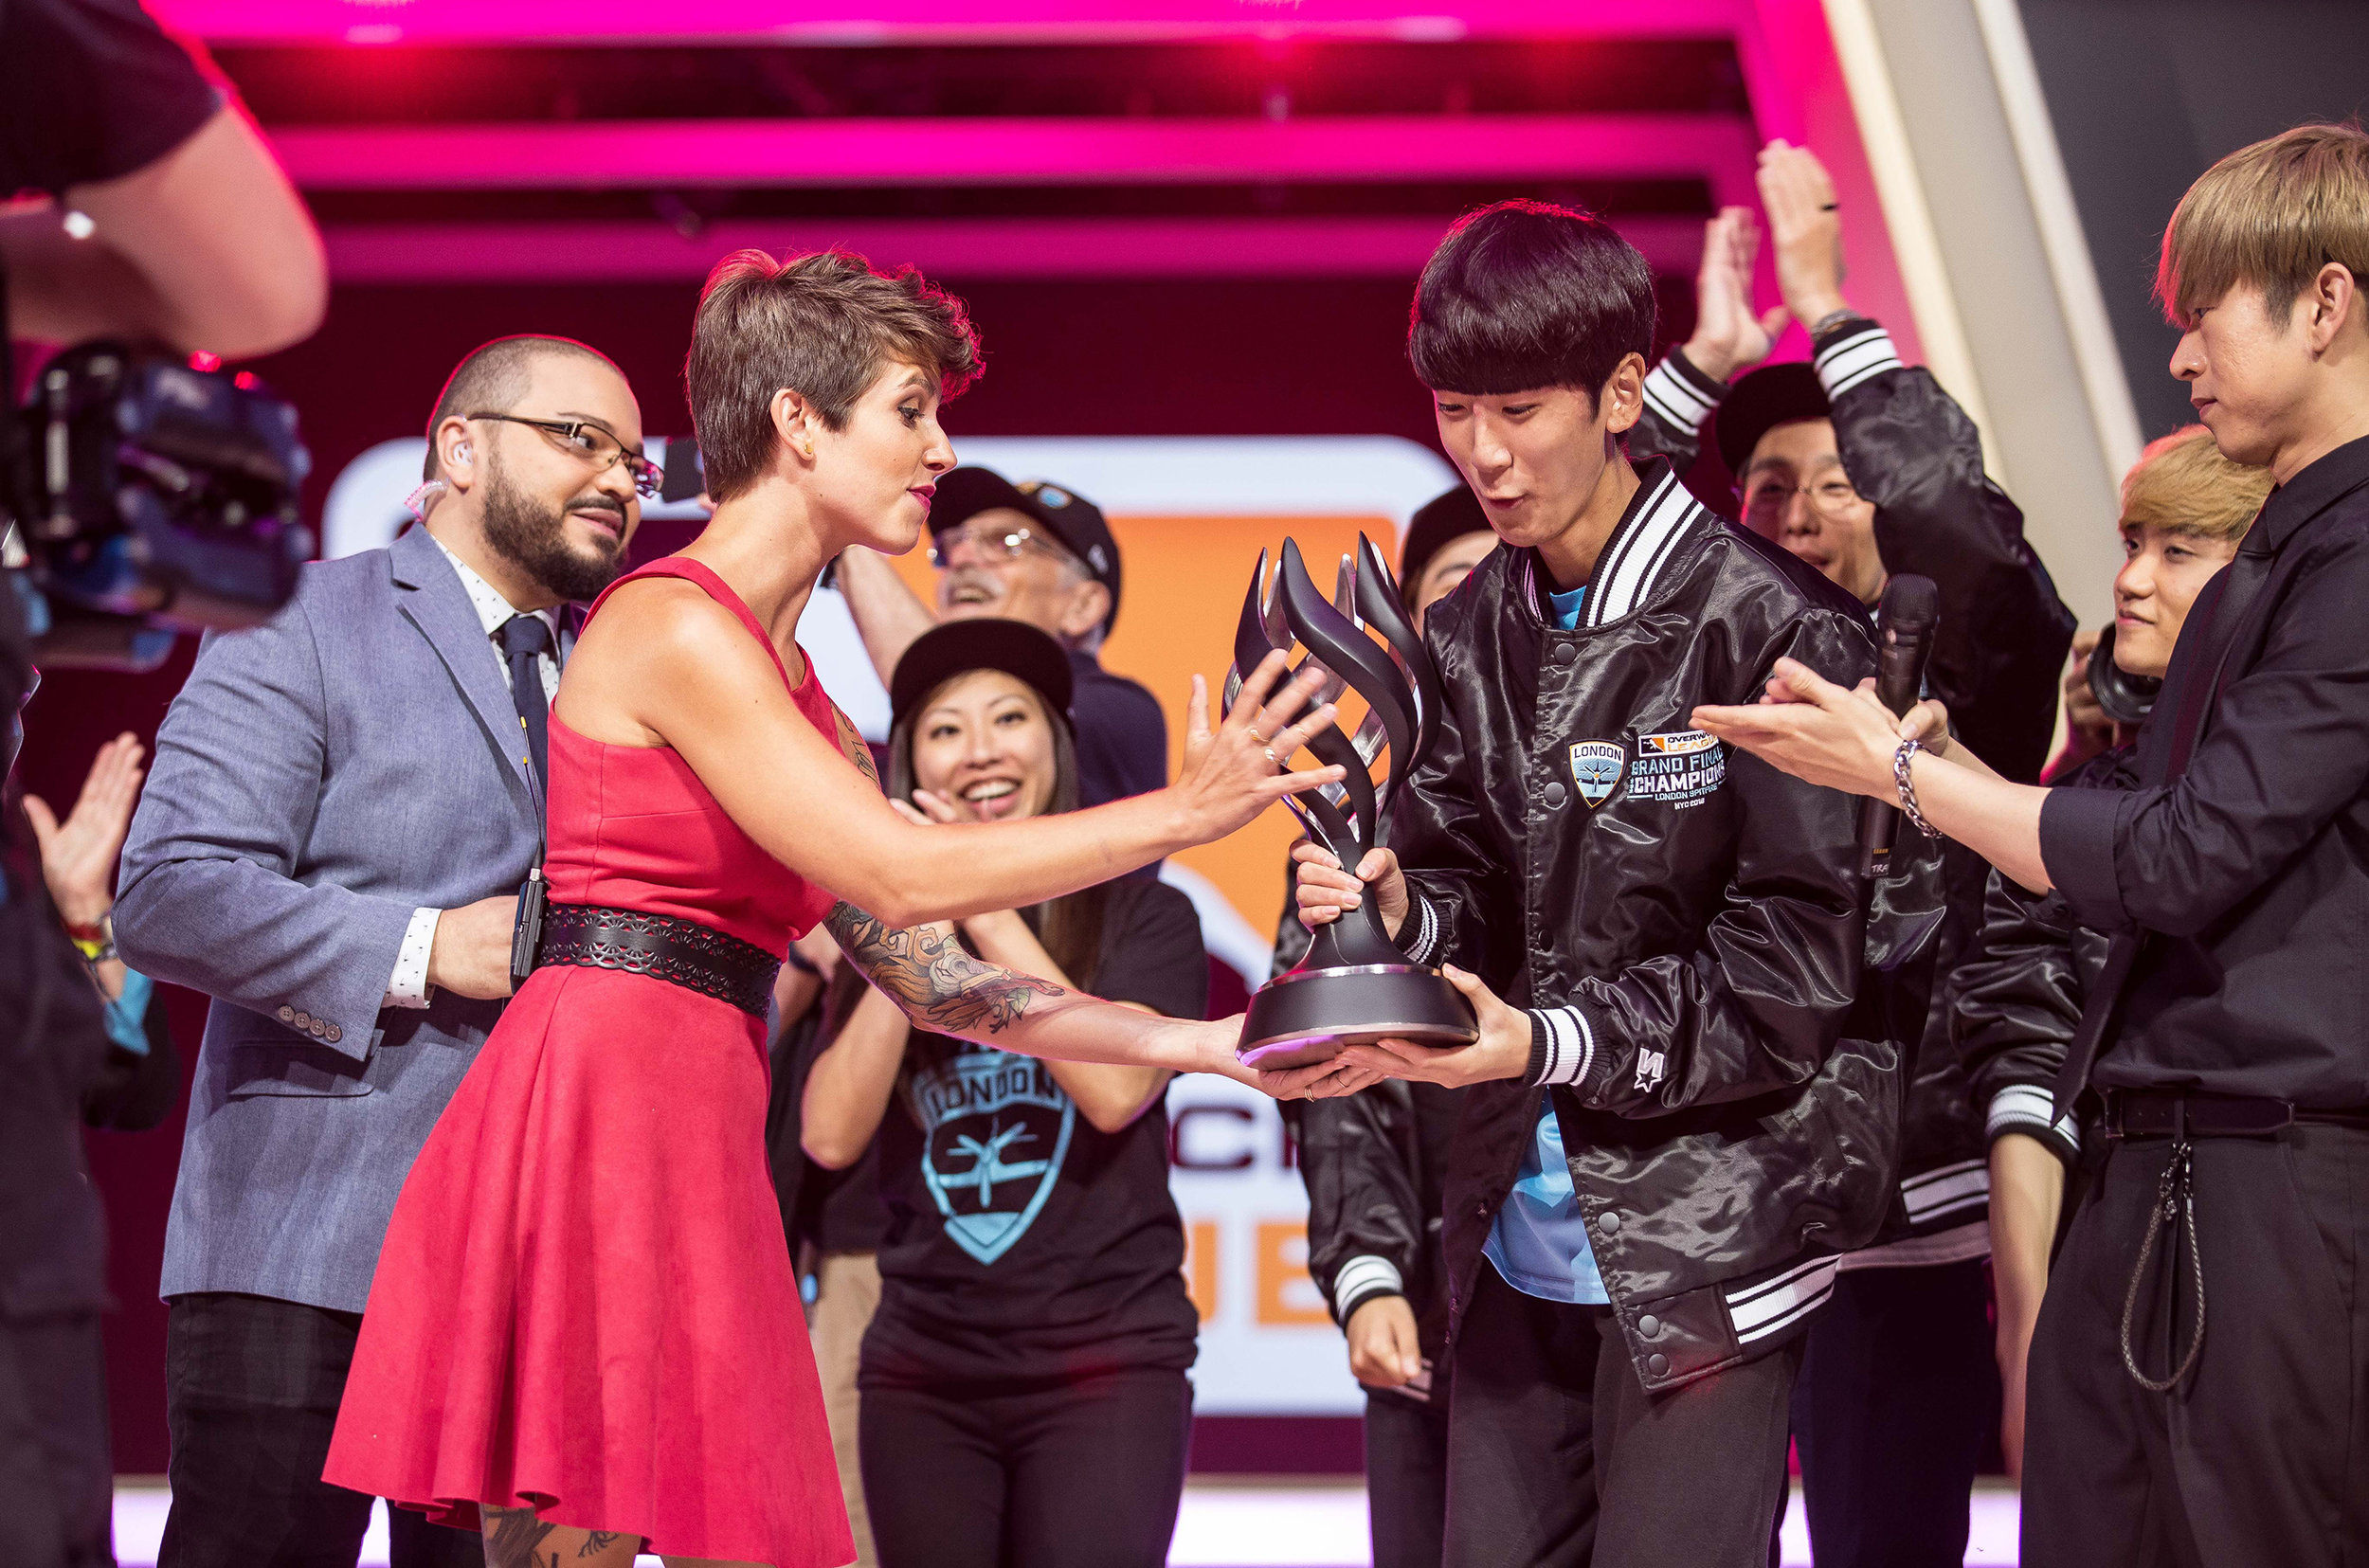 Overwatch League Grand Finals, Salome Soe Gschwind Penski carefully presenting London Spitfire'u2019s Joon-yeong 'Profit' Park with MVP trophy at Barclays Center on July 27, 2018 in Brooklyn, New York.  Photo by Hannah Smith / ESPAT Media